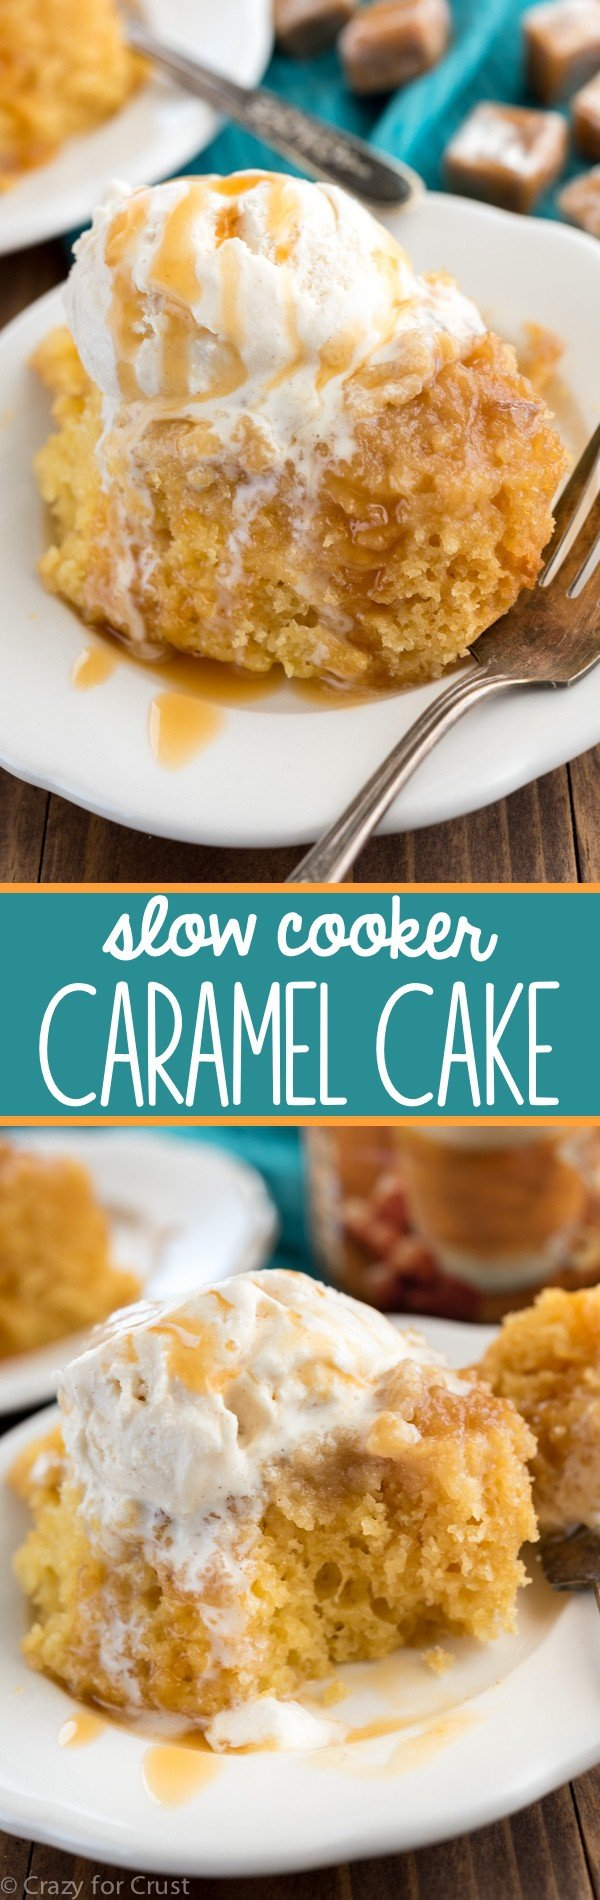 This EASY Slow Cooker Caramel Cake is the perfect recipe! There's caramel in every bite of this sweet and moist cake recipe. It became a fast family favorite!